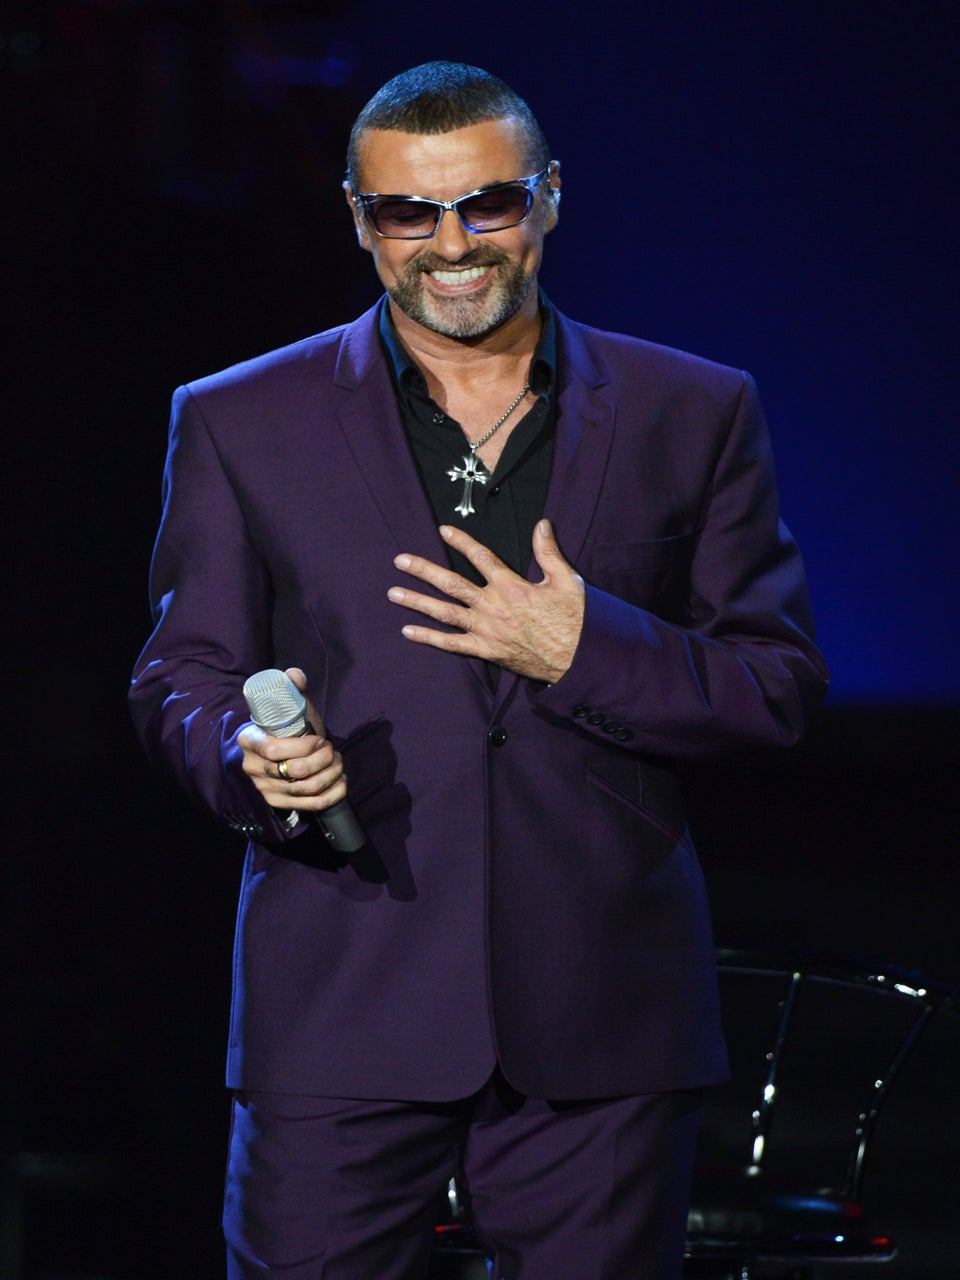 Carrie Fisher, George Michael, and Alan Thicke All Died From Heart Disease, the Leading Cause of Death Worldwide